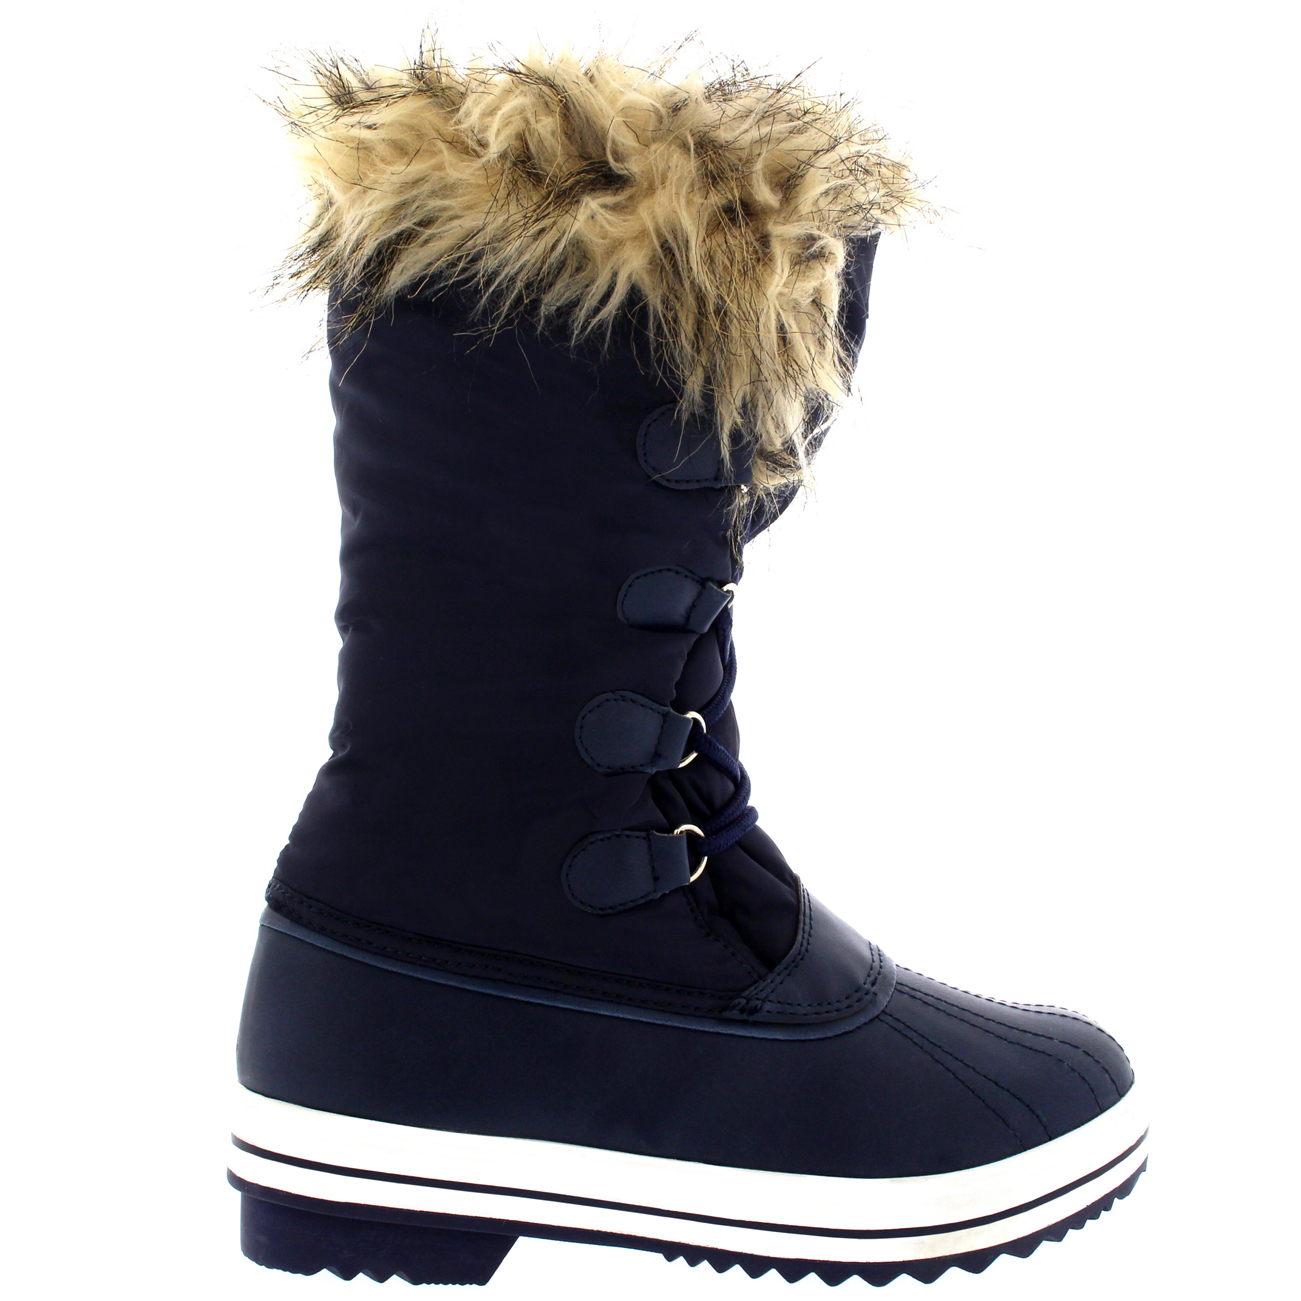 polaru0027s cold weather footwear are a must have essential of the winter wardrobe ideal casual outdoor footwear for those cold winter days and suitable for - Duck Rain Boots